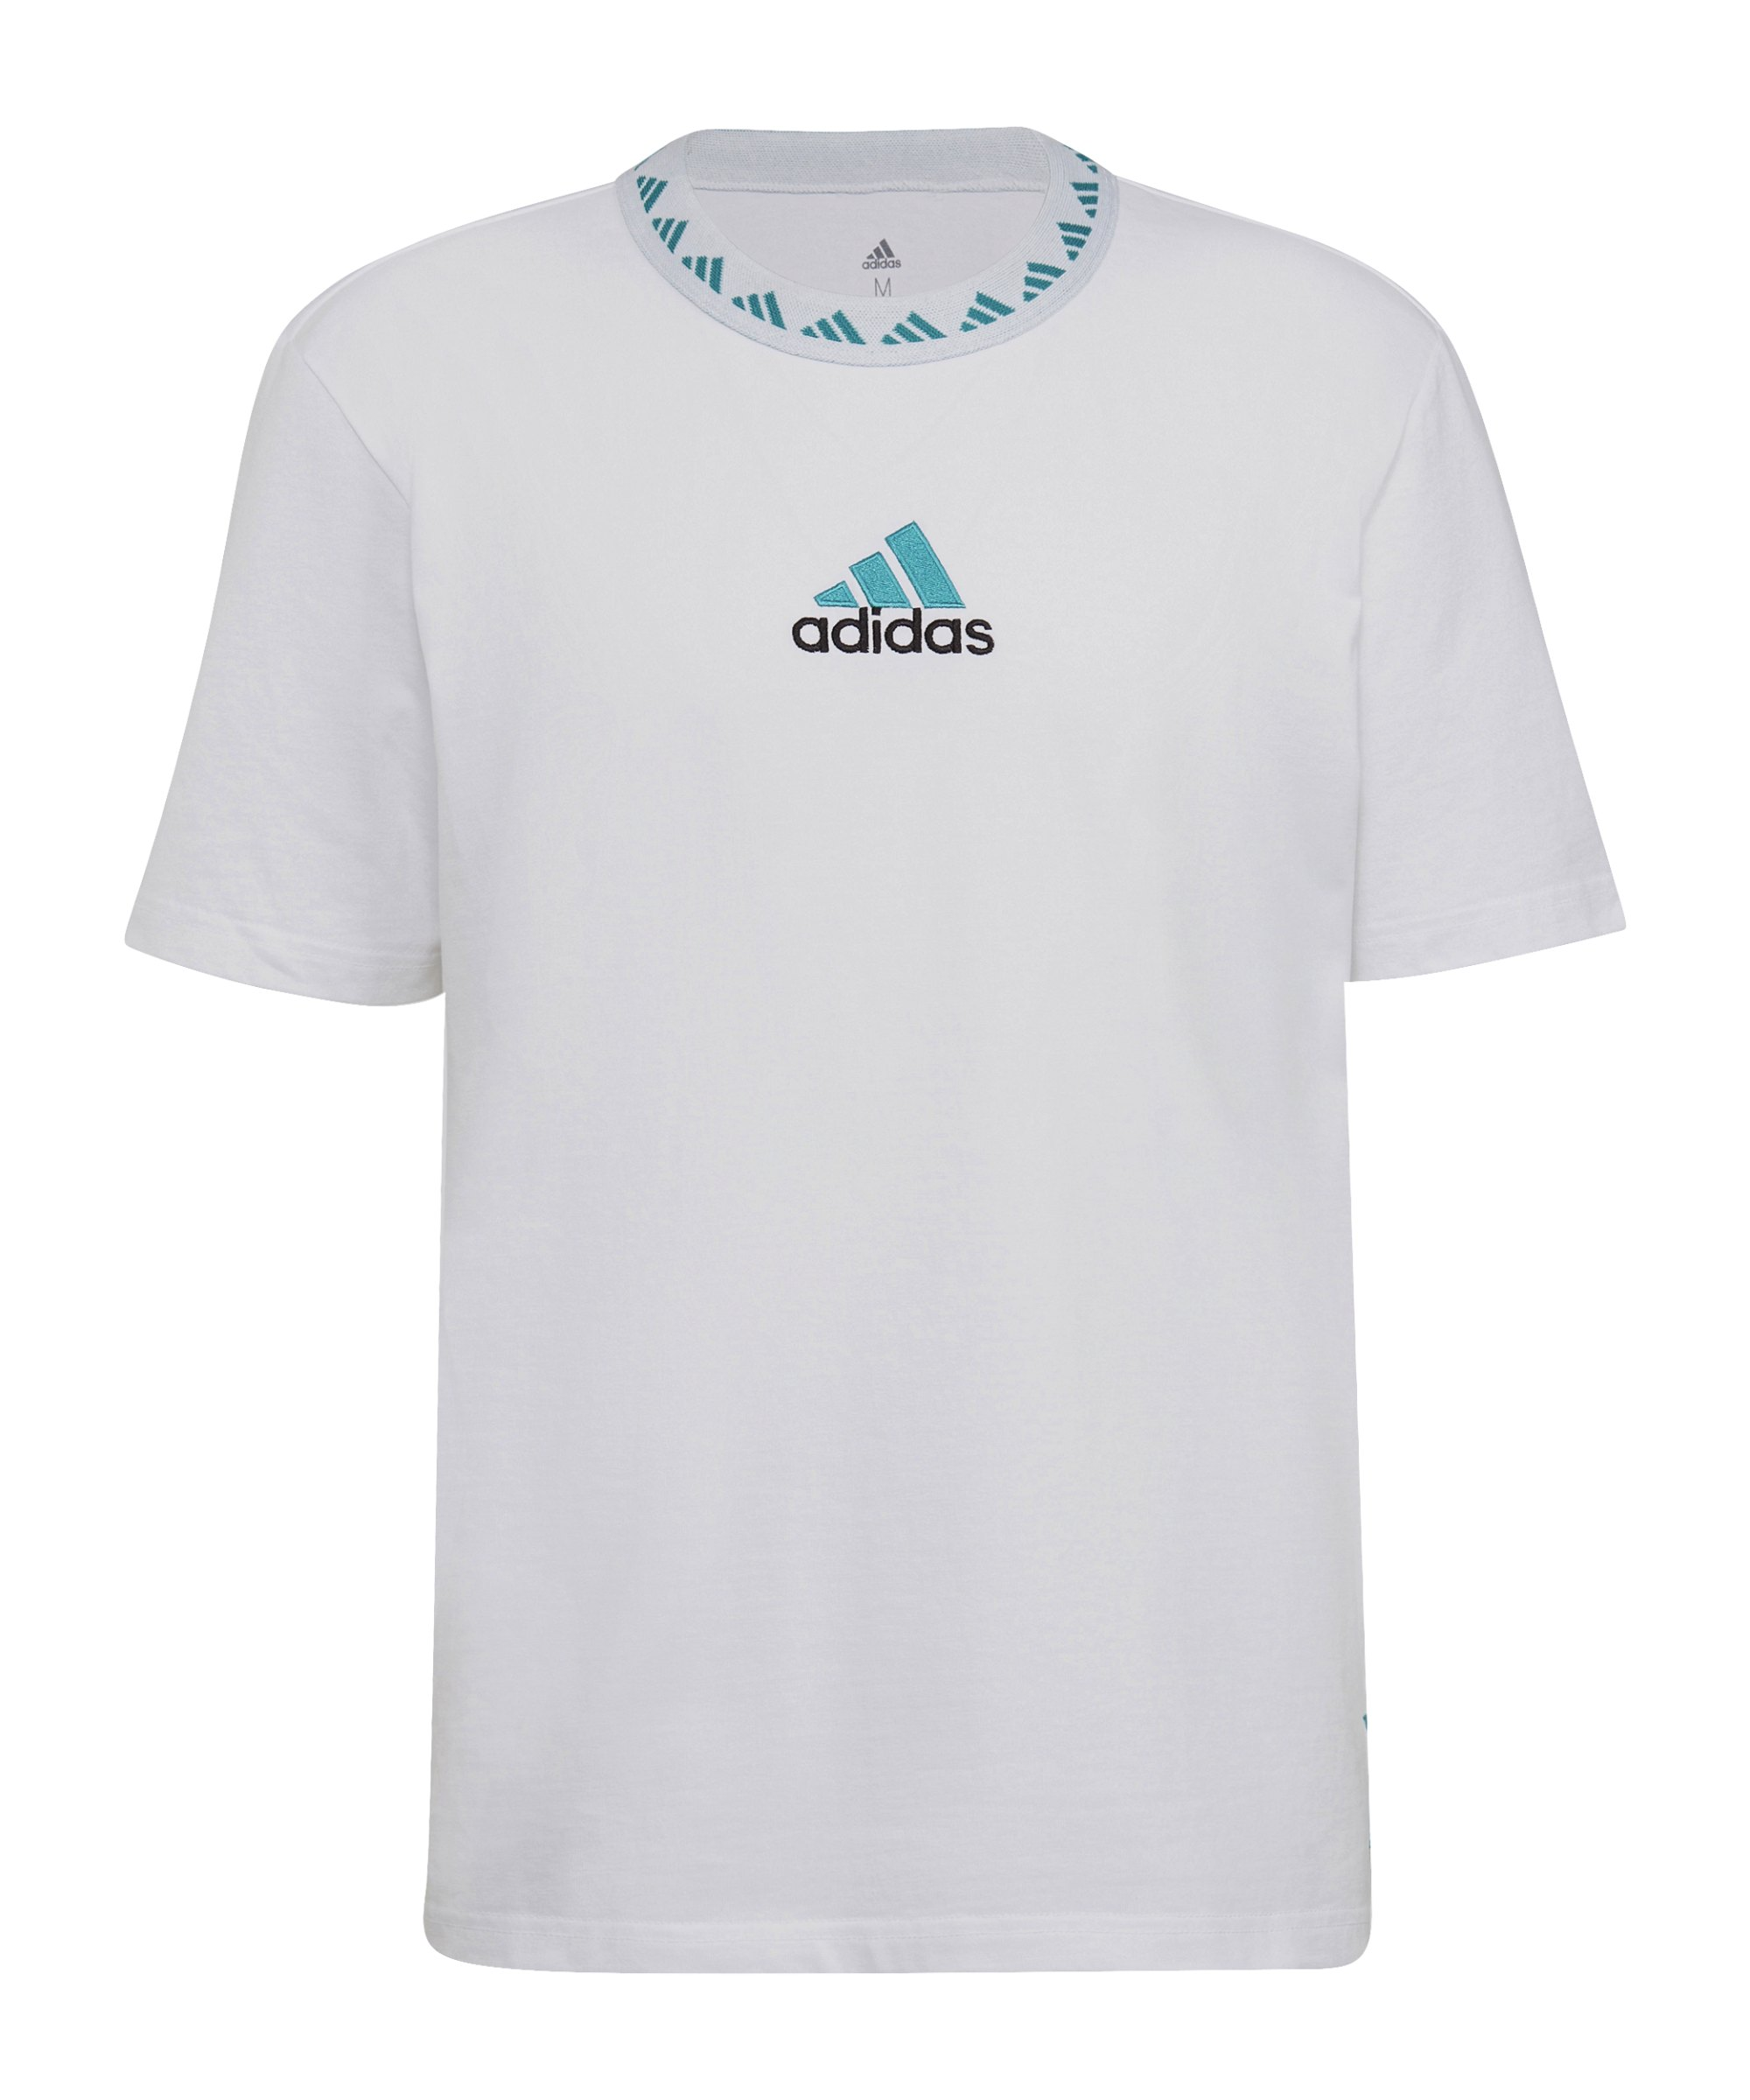 adidas Real Madrid Icon T-Shirt Weiss - weiss